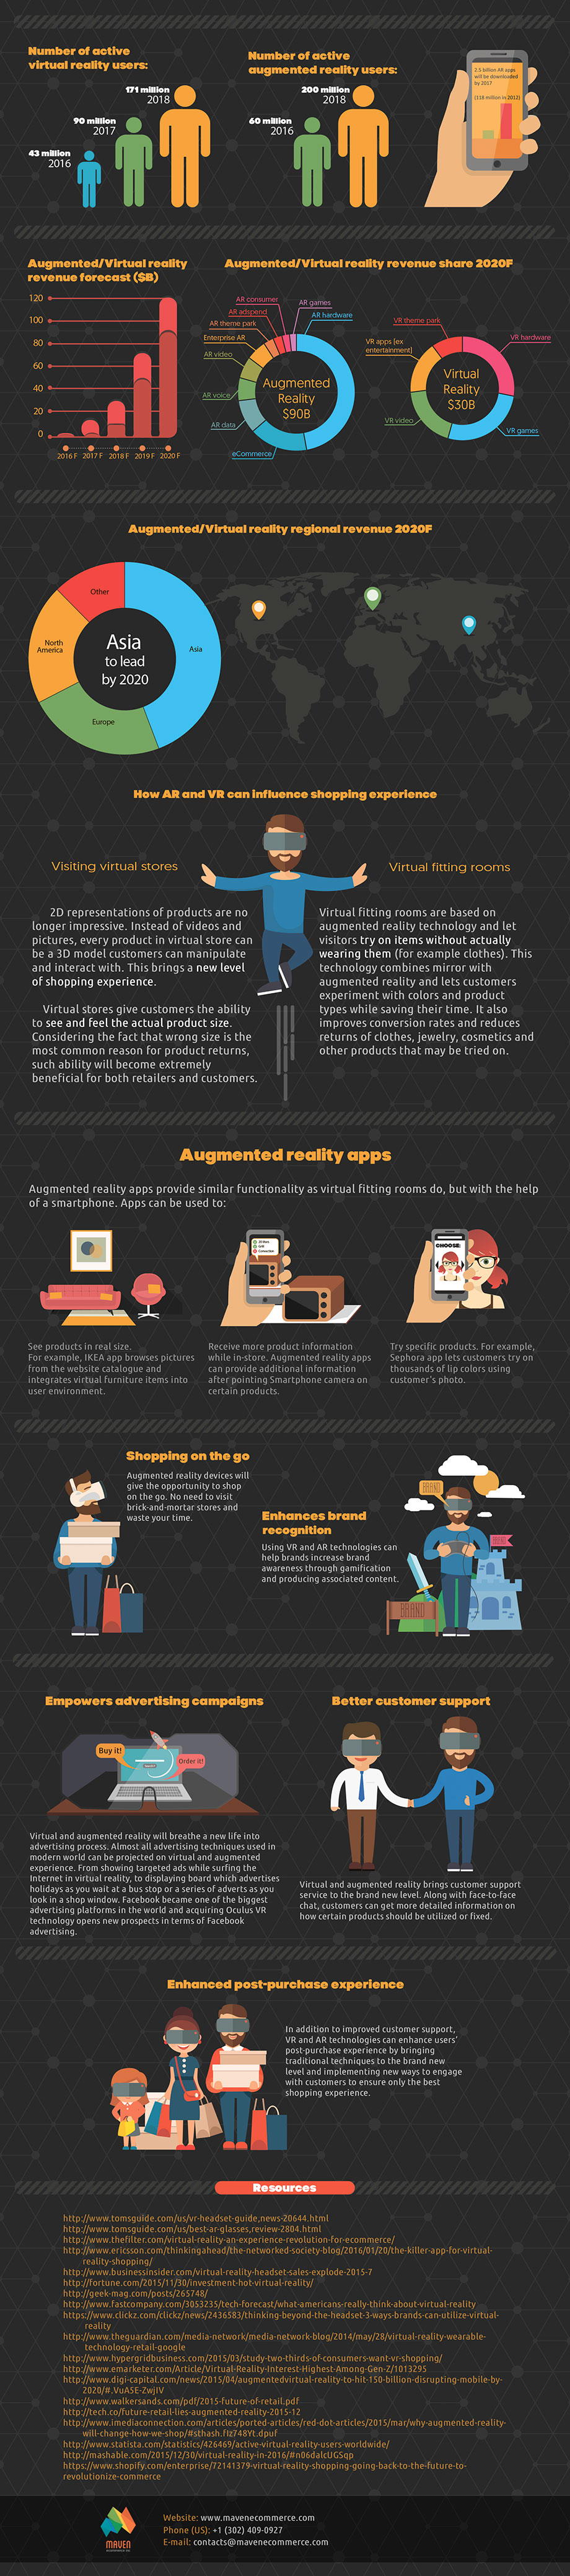 How Virtual and Augmented Reality will Change the Way We Shop (Infographic) 2